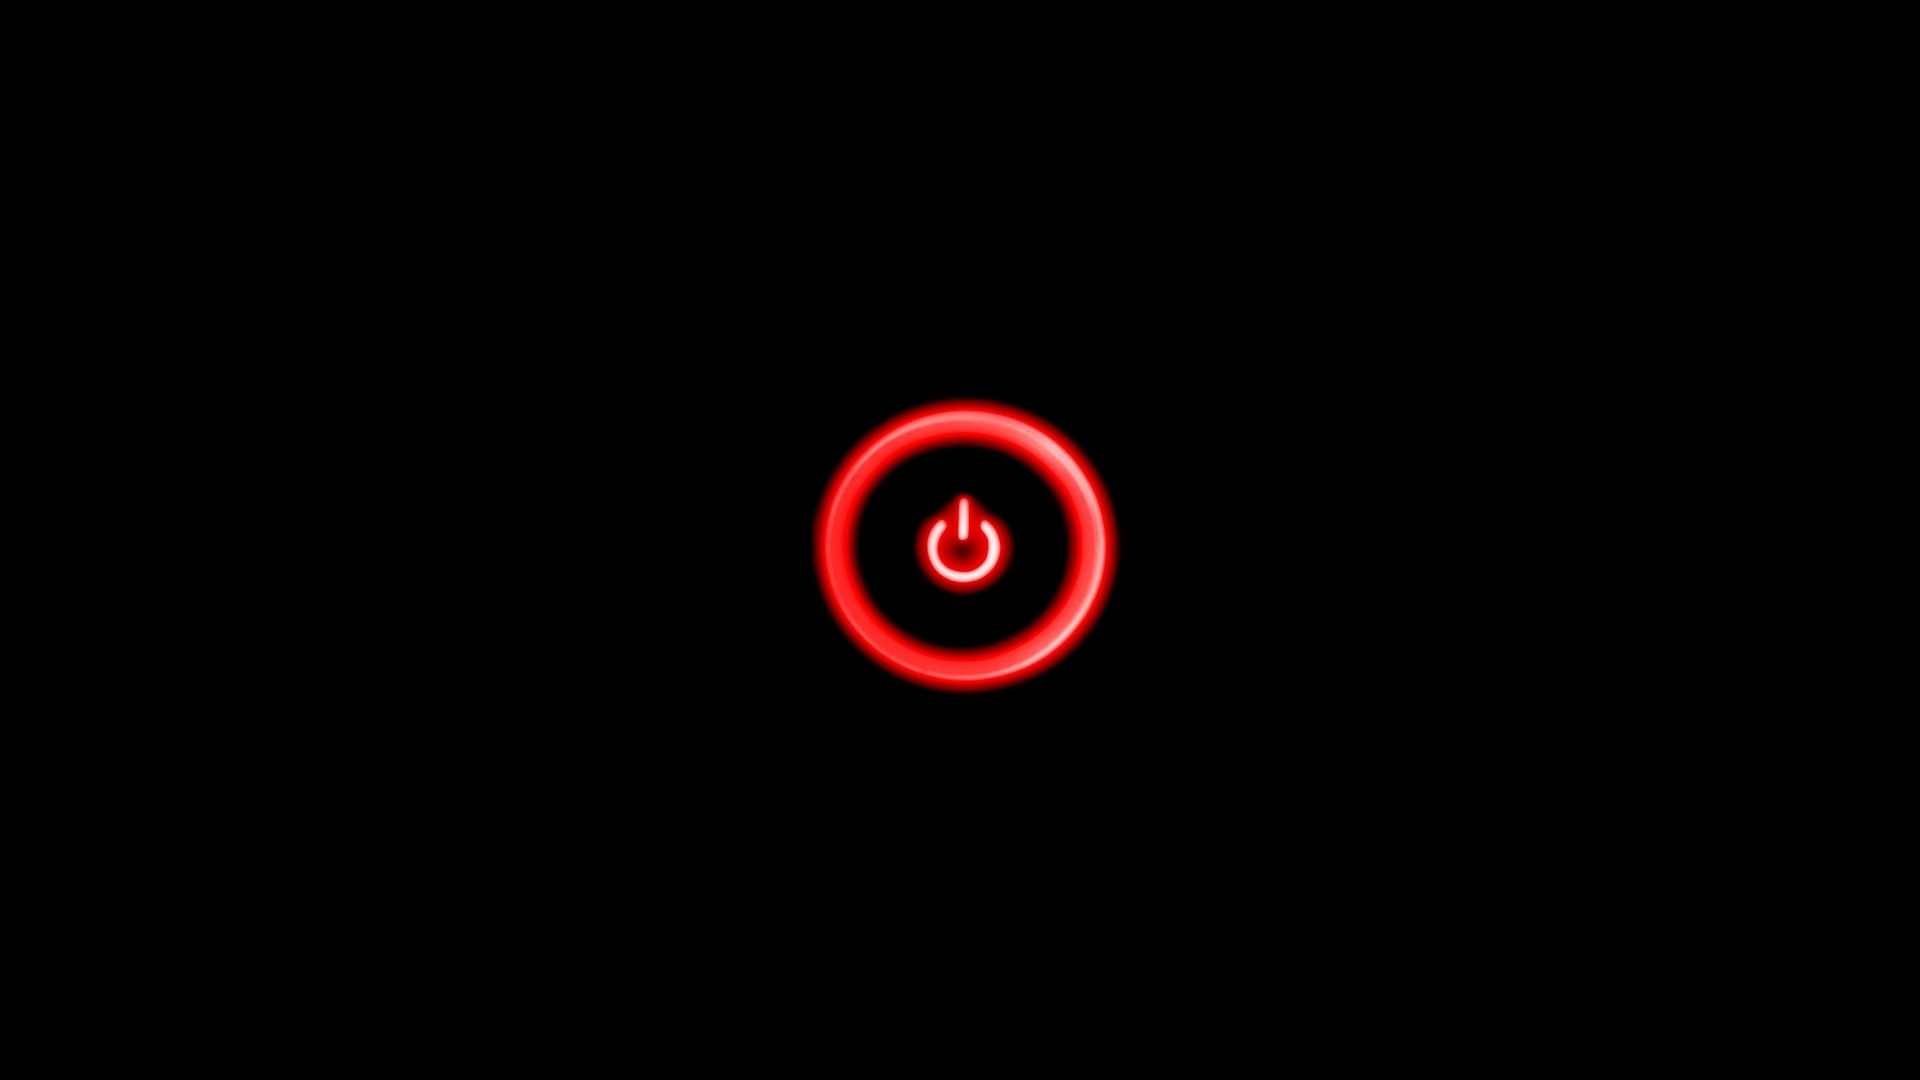 1920x1080 Red Power Button